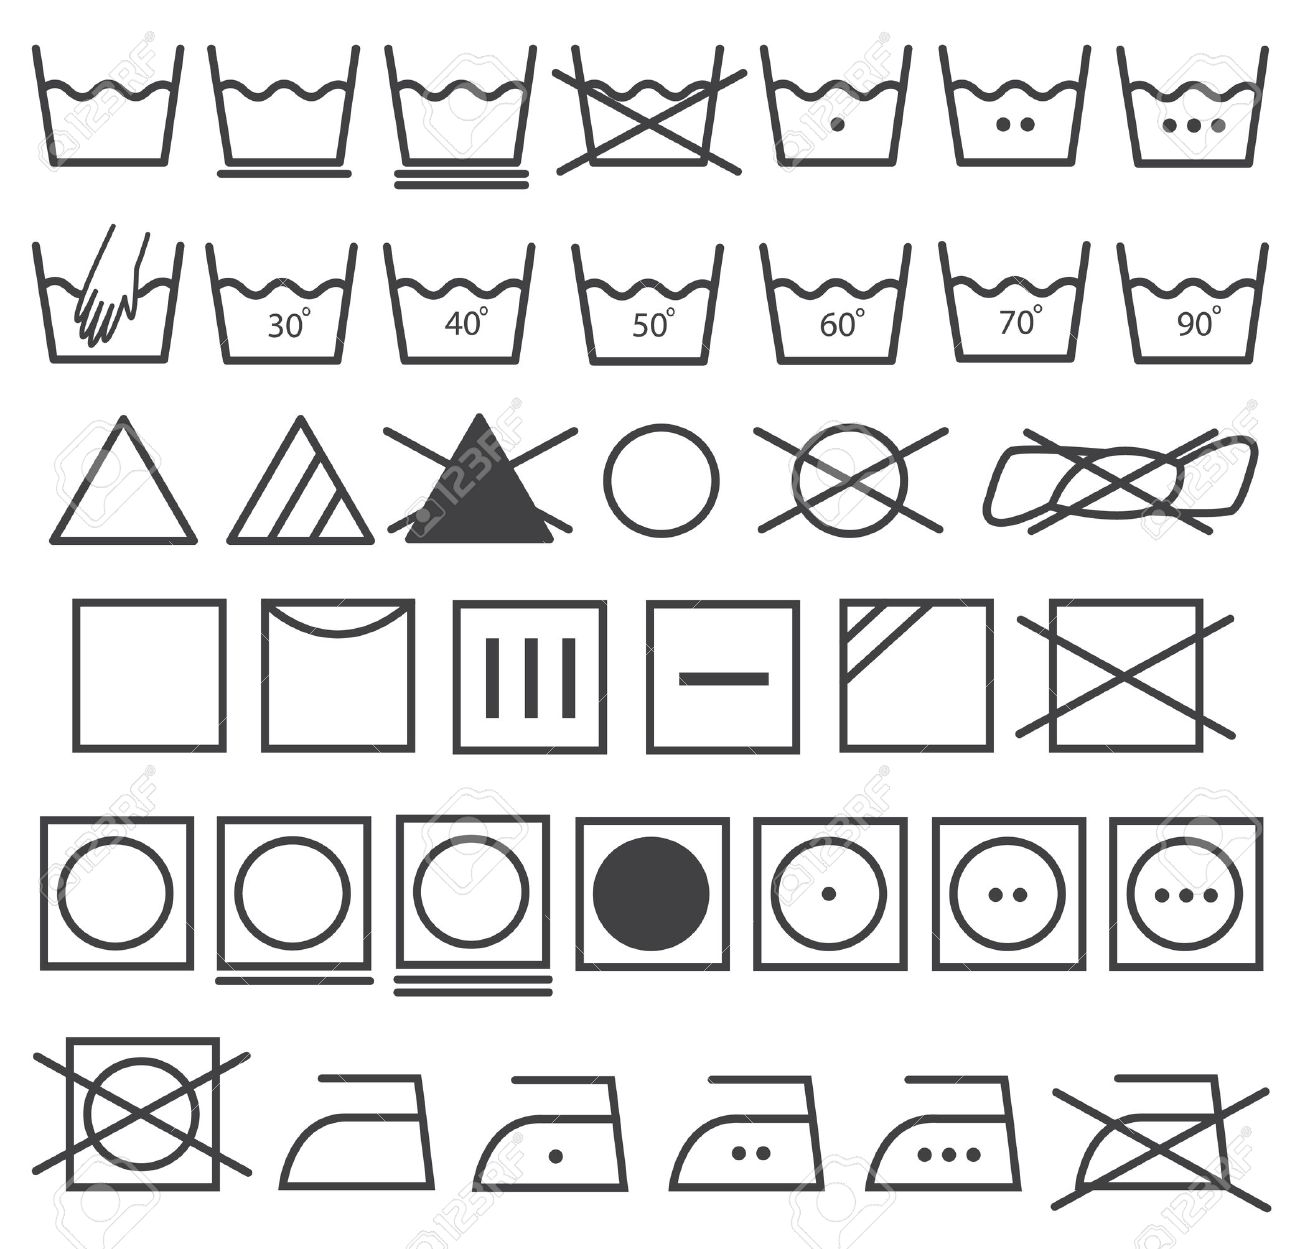 Laundry icons vector set washing symbol royalty free cliparts laundry icons vector set washing symbol stock vector 24525765 biocorpaavc Image collections